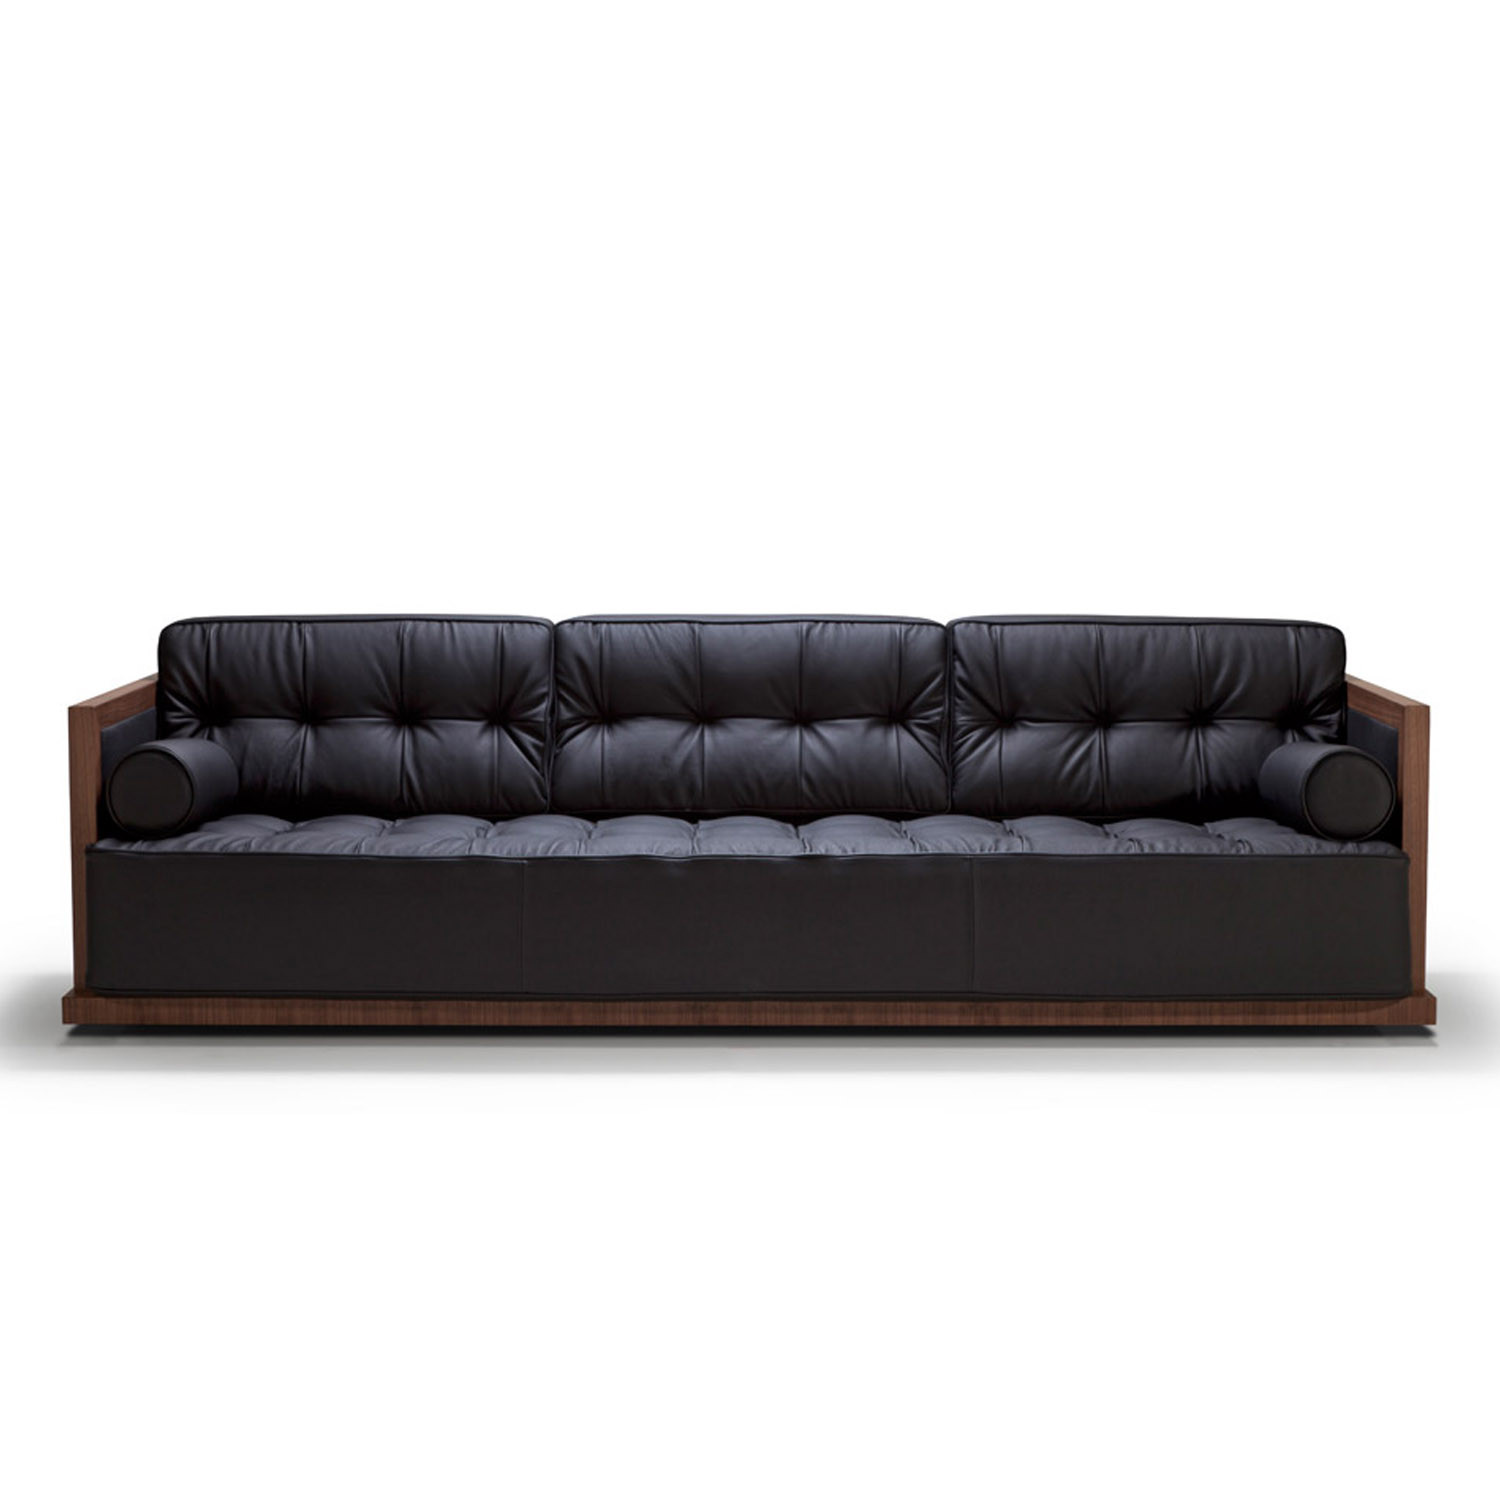 Hanedan Executive Leather Sofa